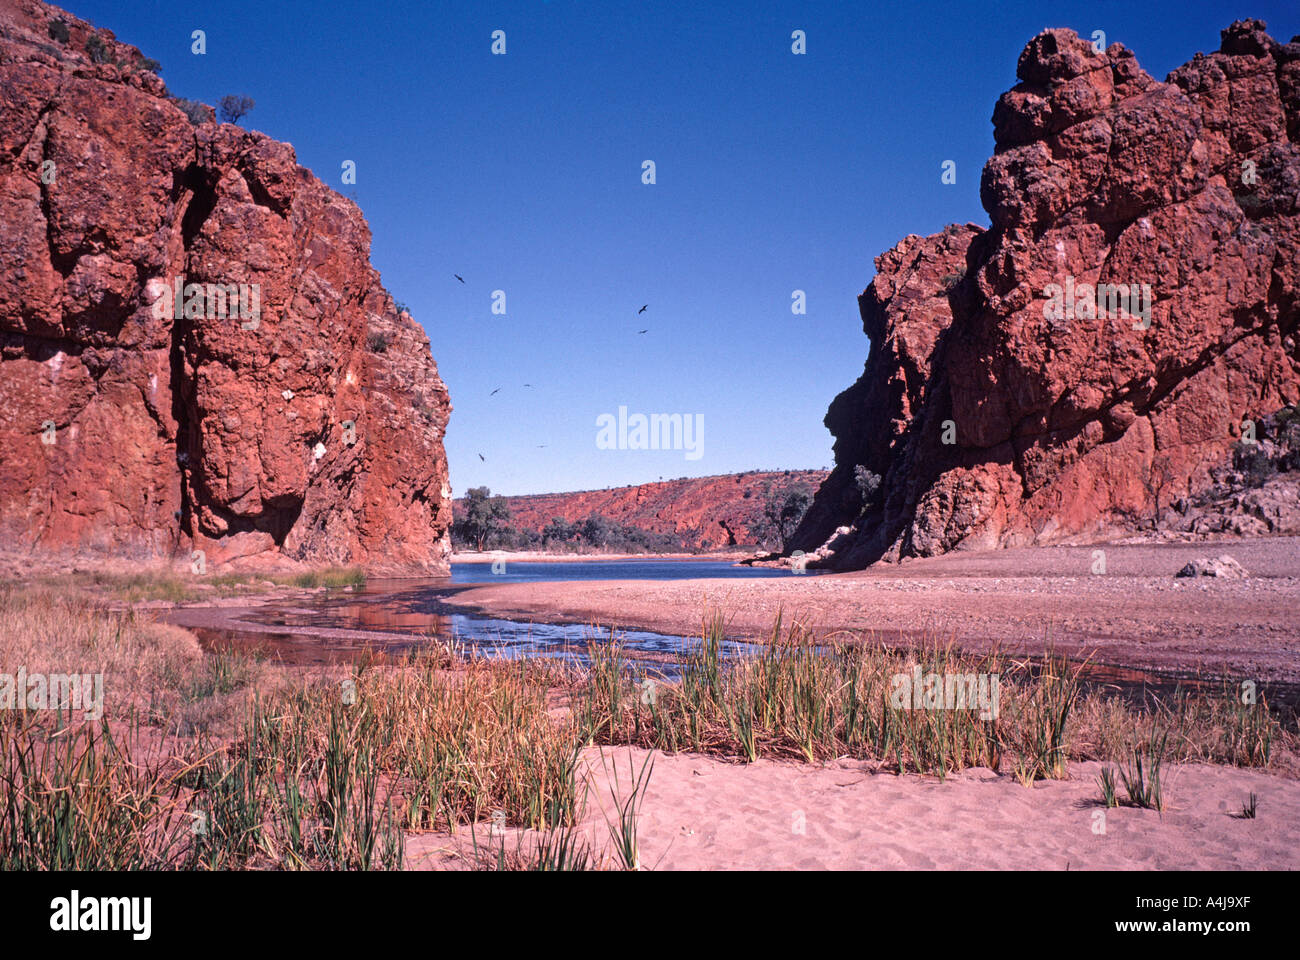 The Finke River in Glen Helen Gorge, West MacDonnell Range National Park, Northern Territory, Australia. - Stock Image